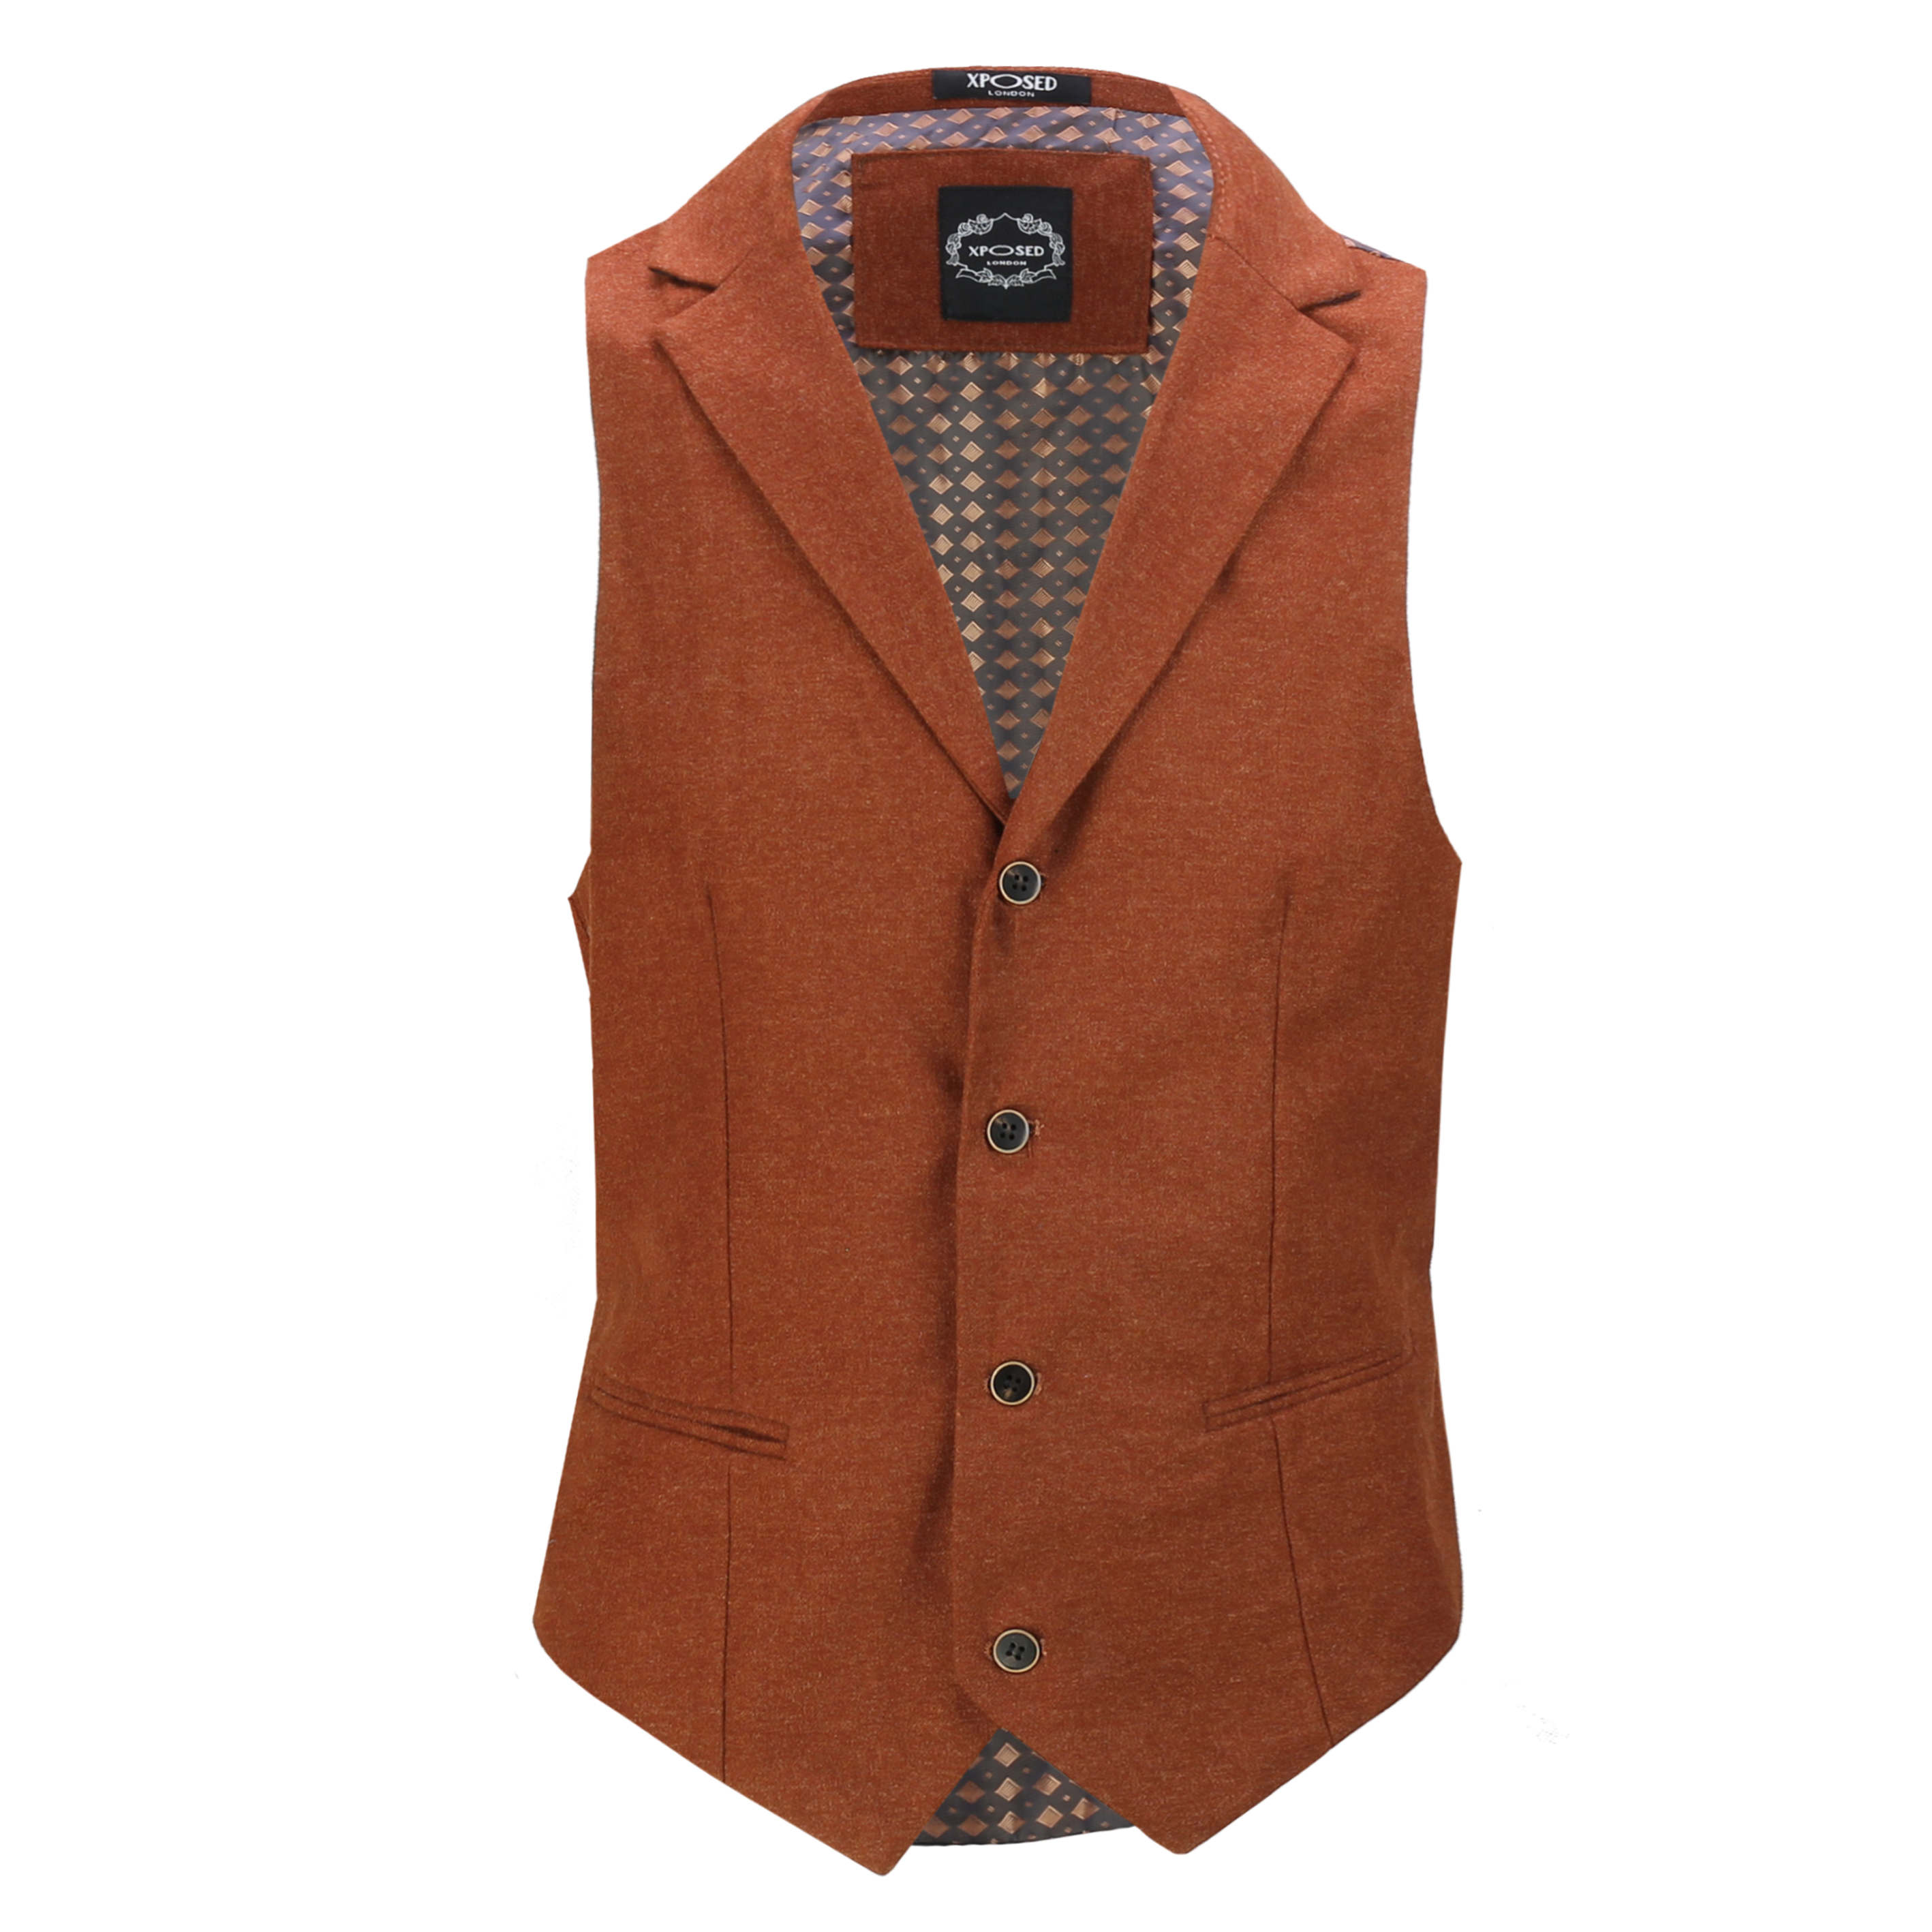 Mens-Classic-Collar-Waistcoat-Retro-Vintage-Style-Tailored-Fit-Smart-Formal-Vest thumbnail 21